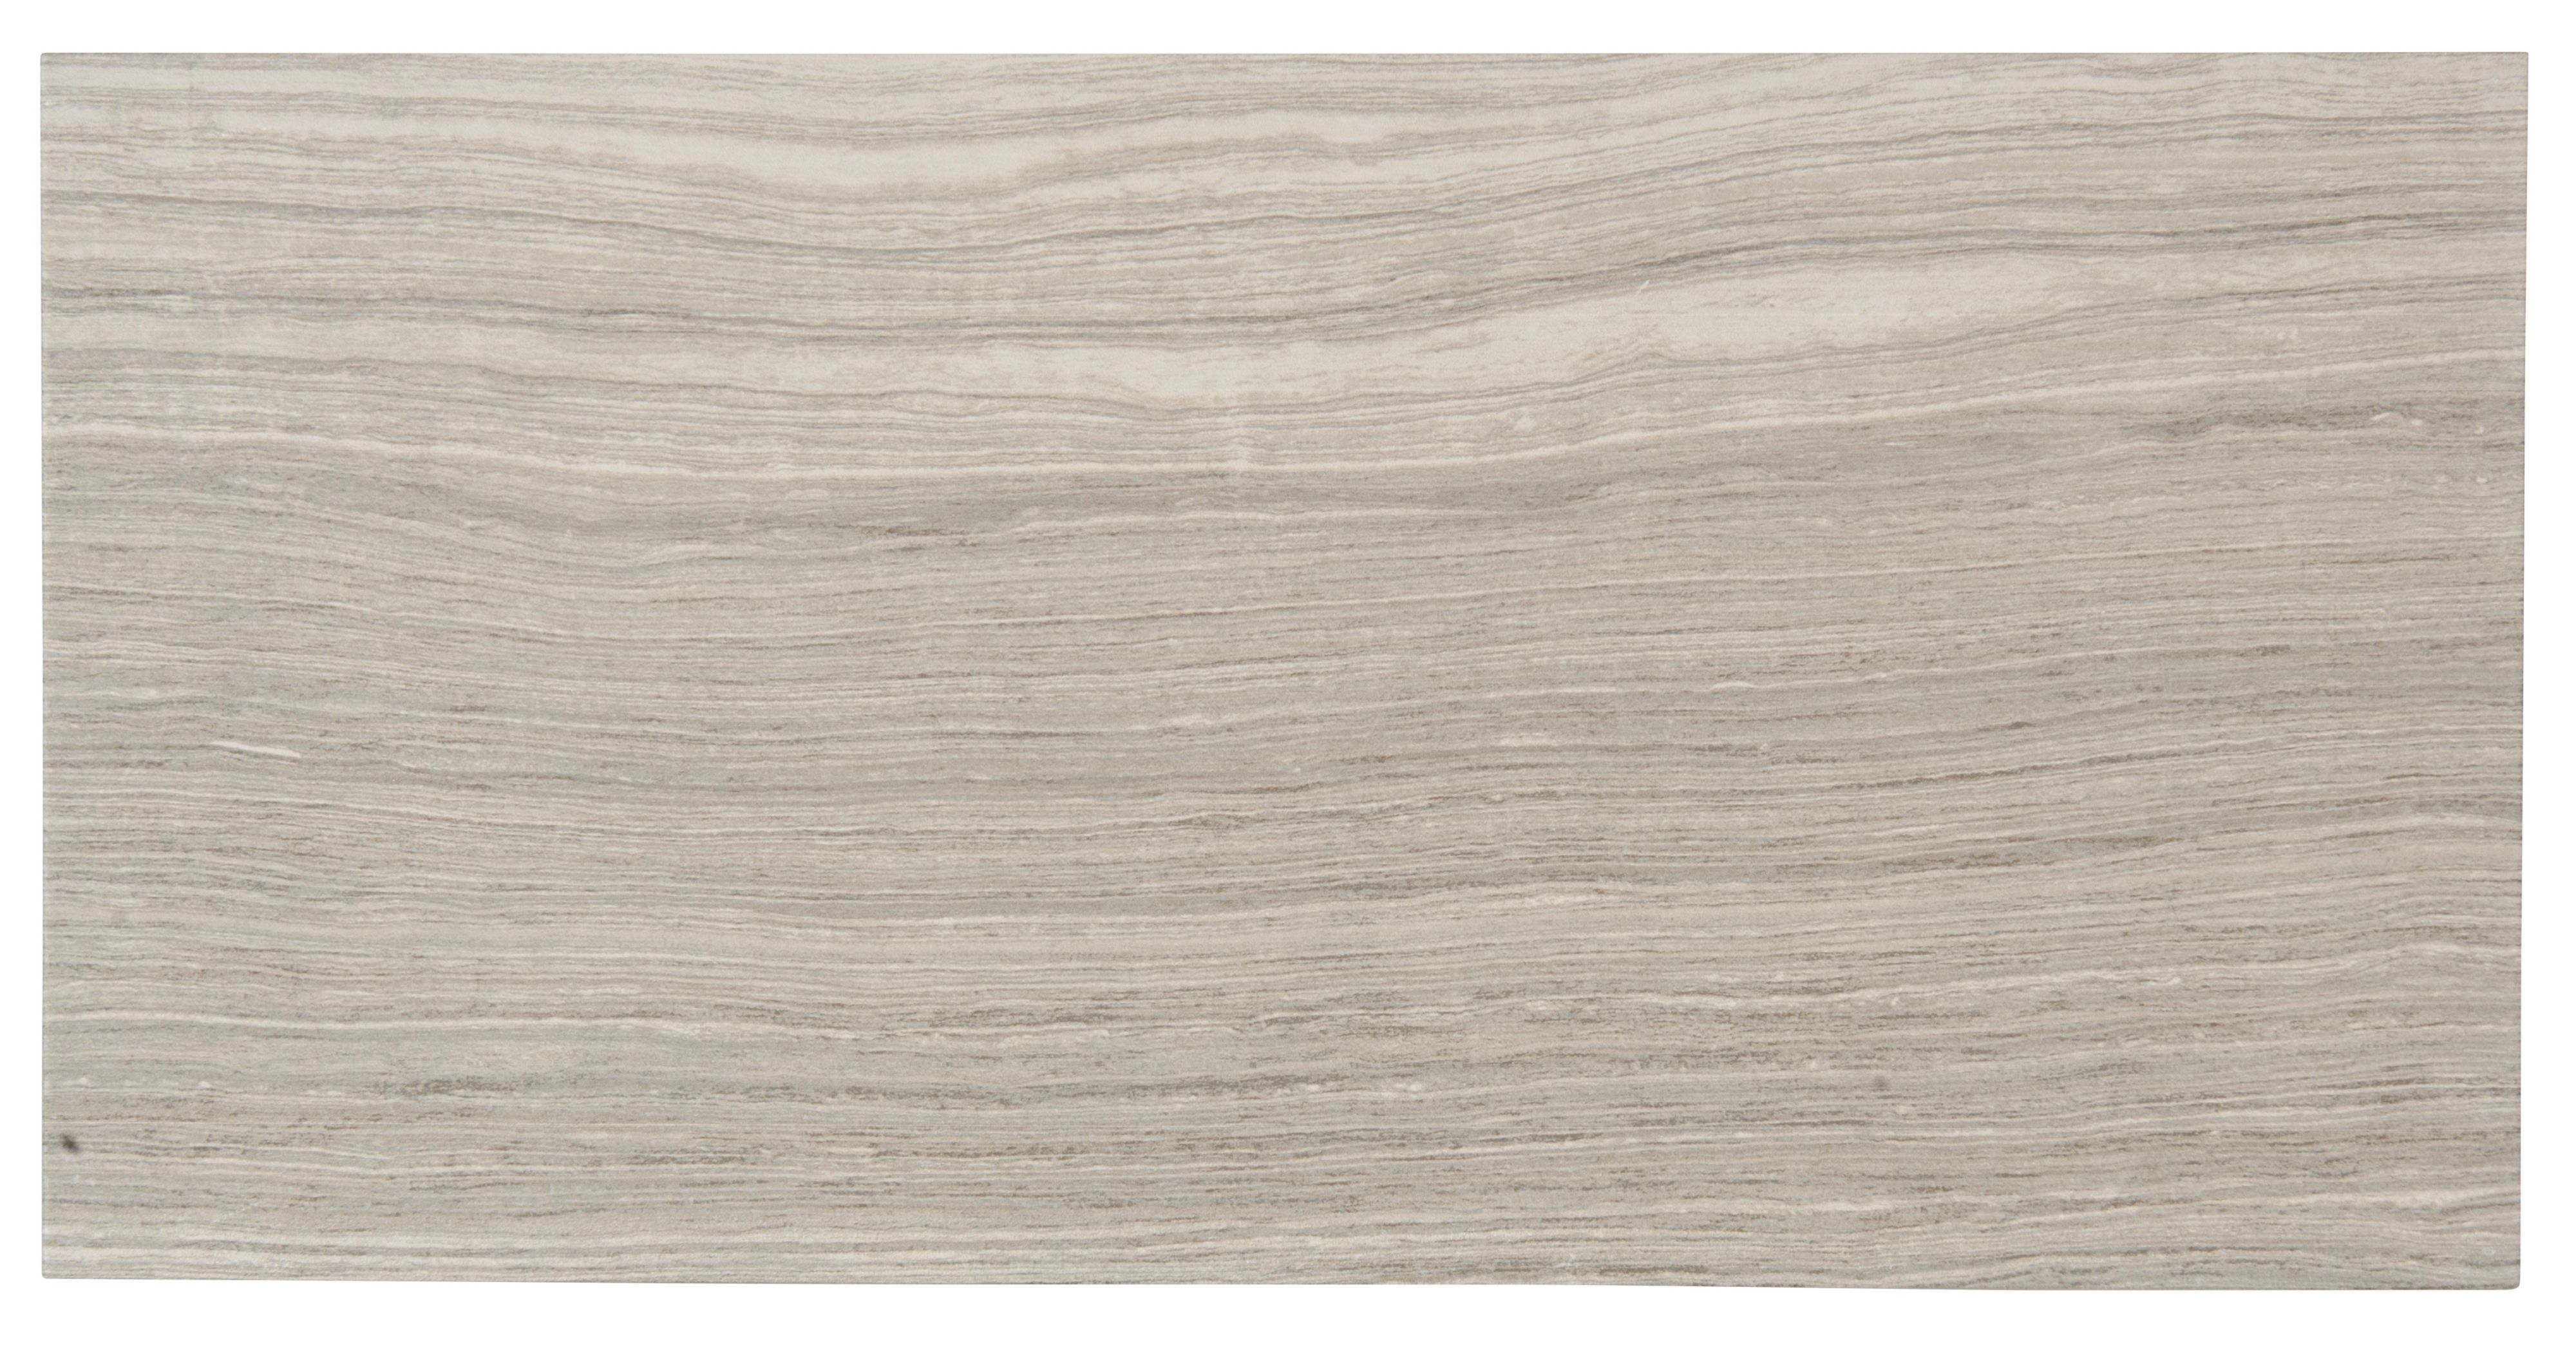 Bolina Grey Porcelain Wall & Floor Tile, Pack of 6, (L)600mm (W)300mm | Departments | DIY at B&Q